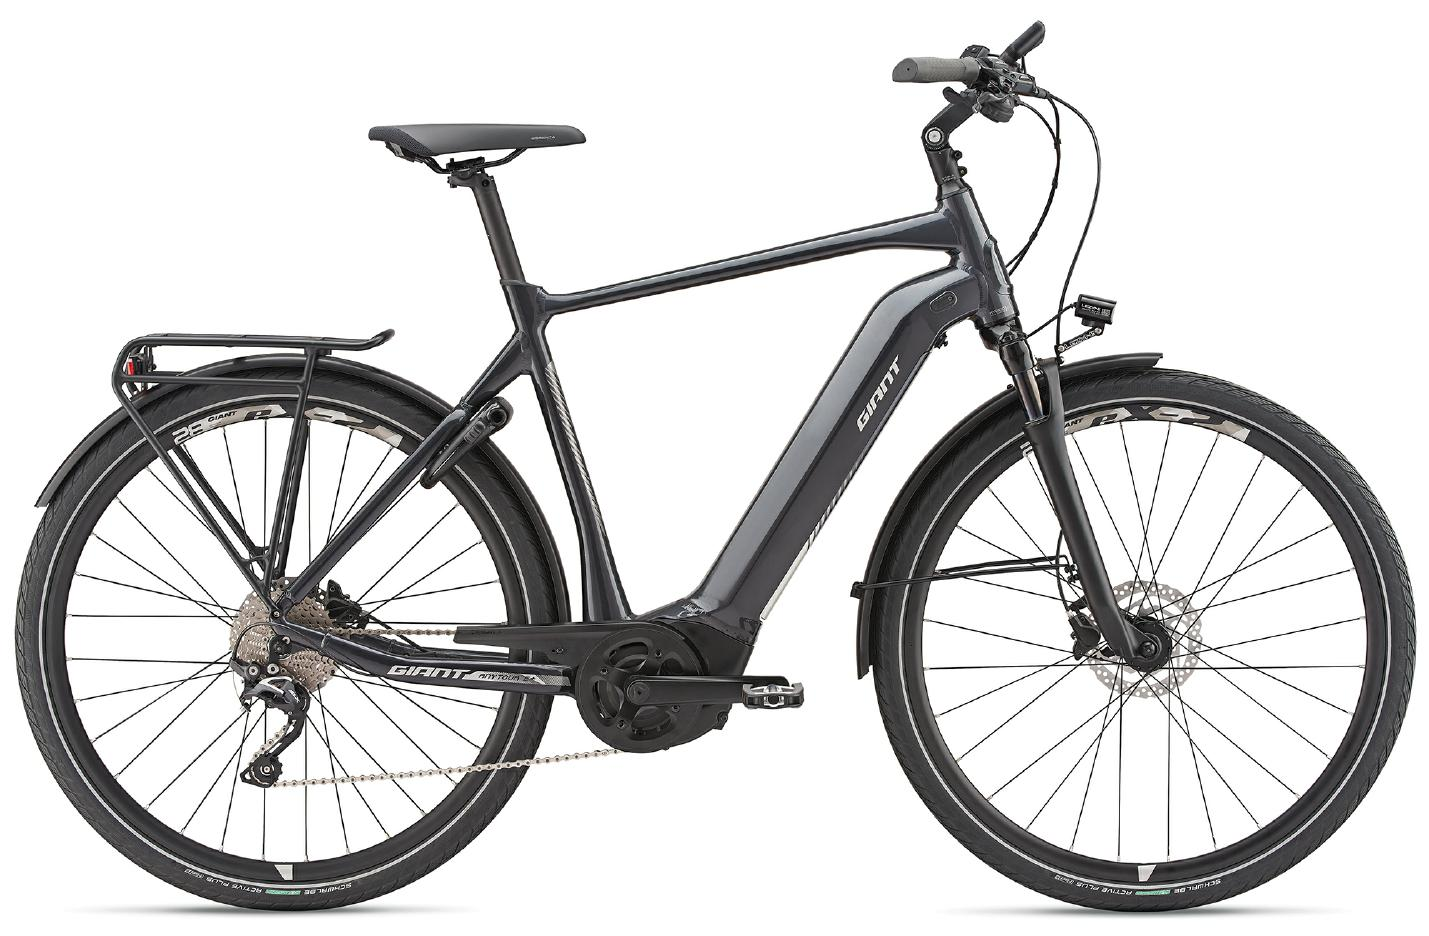 Giant Anytour E+ 1 - GTS - Trekking e-Bike 2019